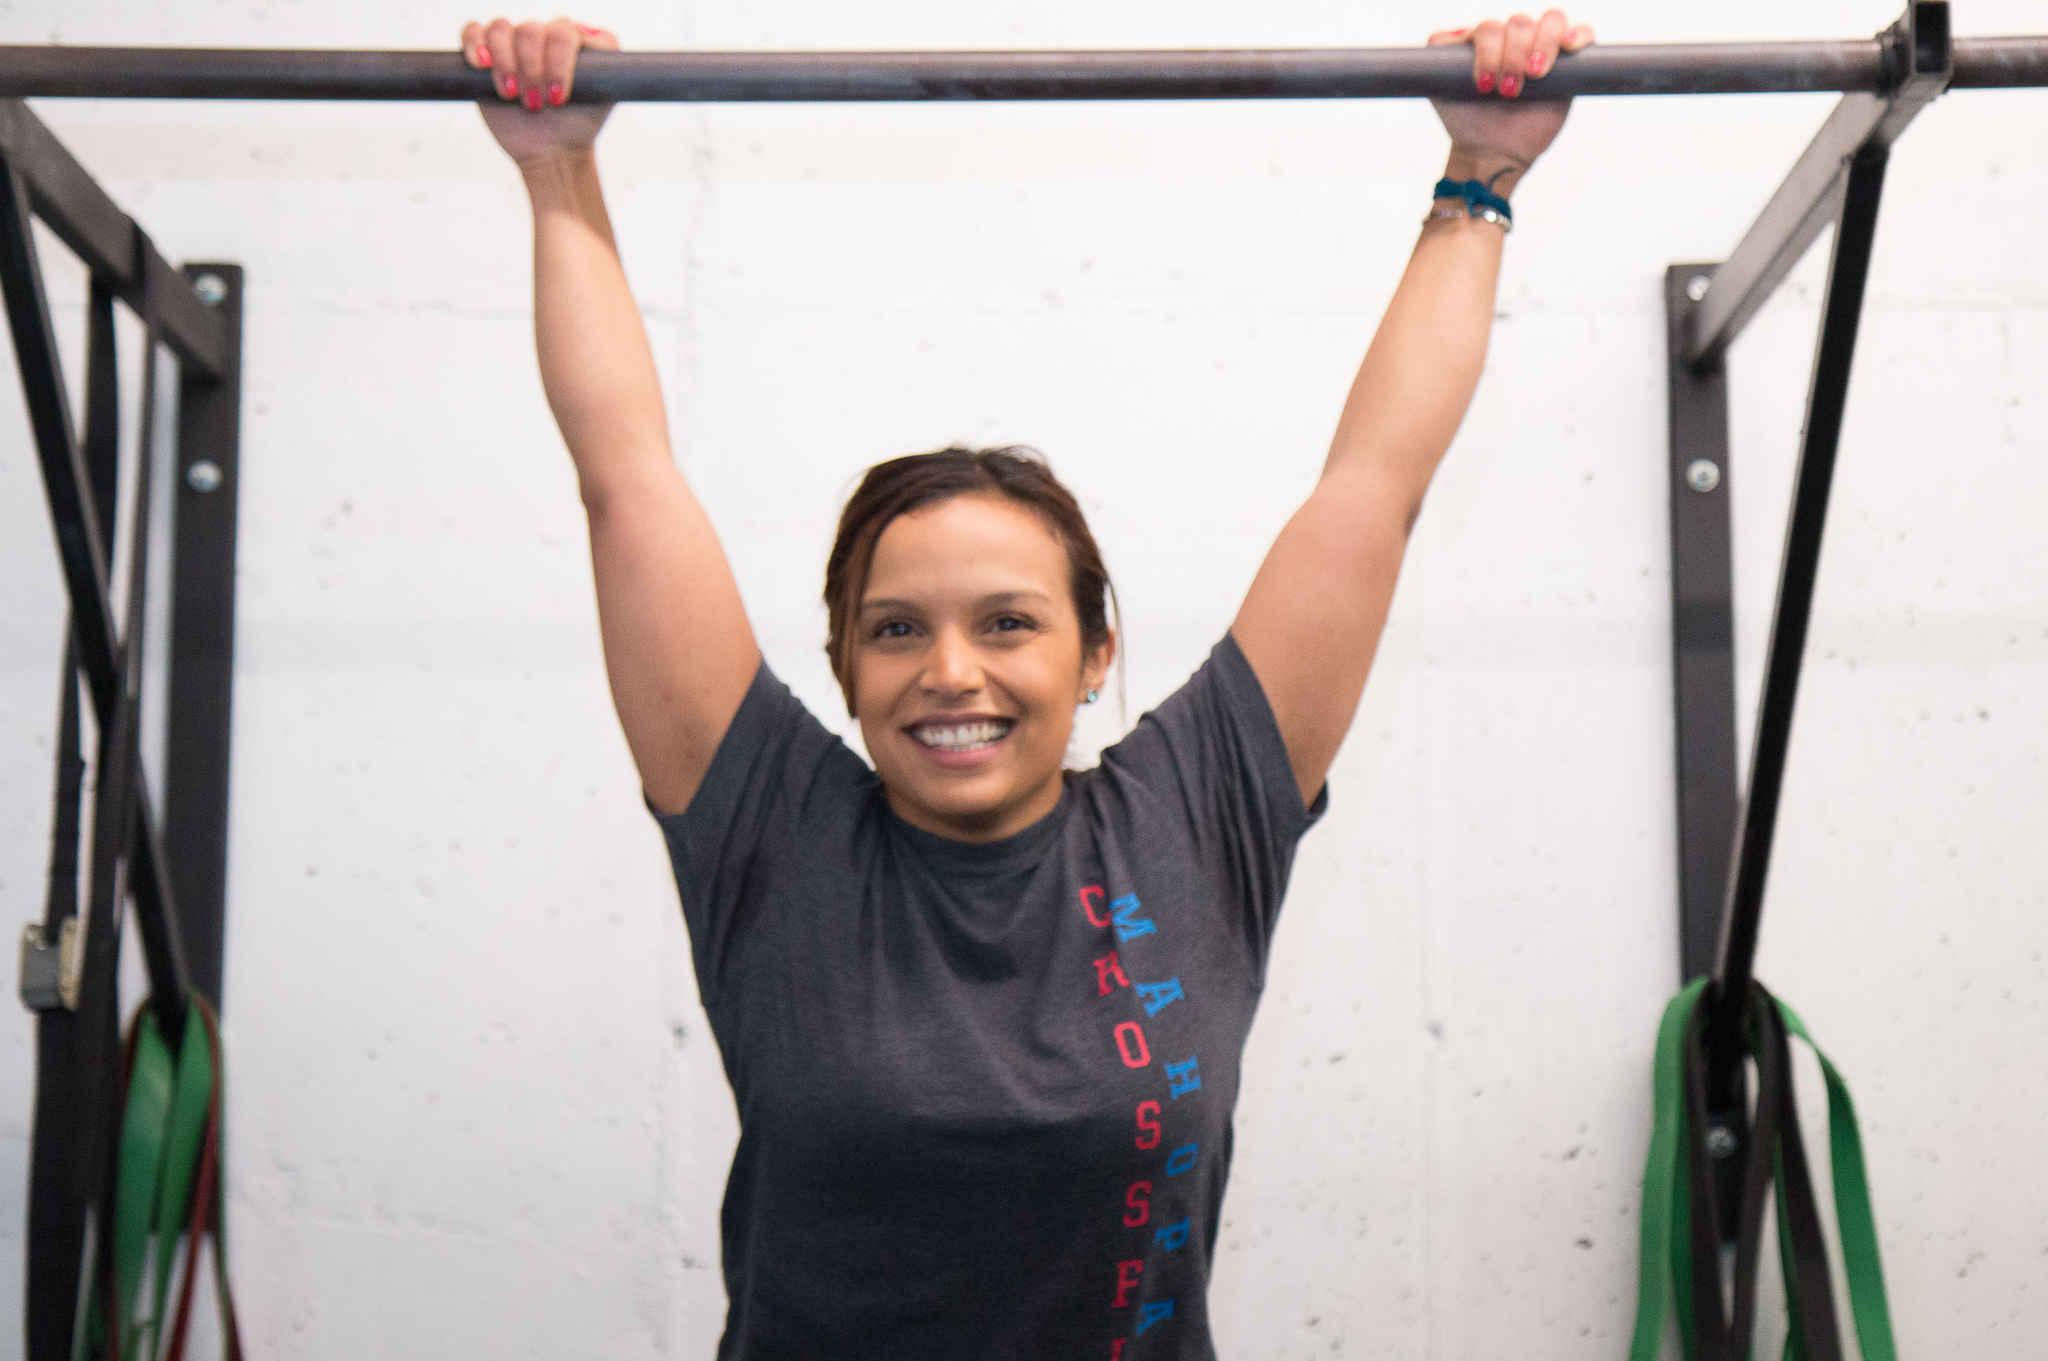 jess-crossfit-mahopac-everyday-lifter-featured-21.jpg